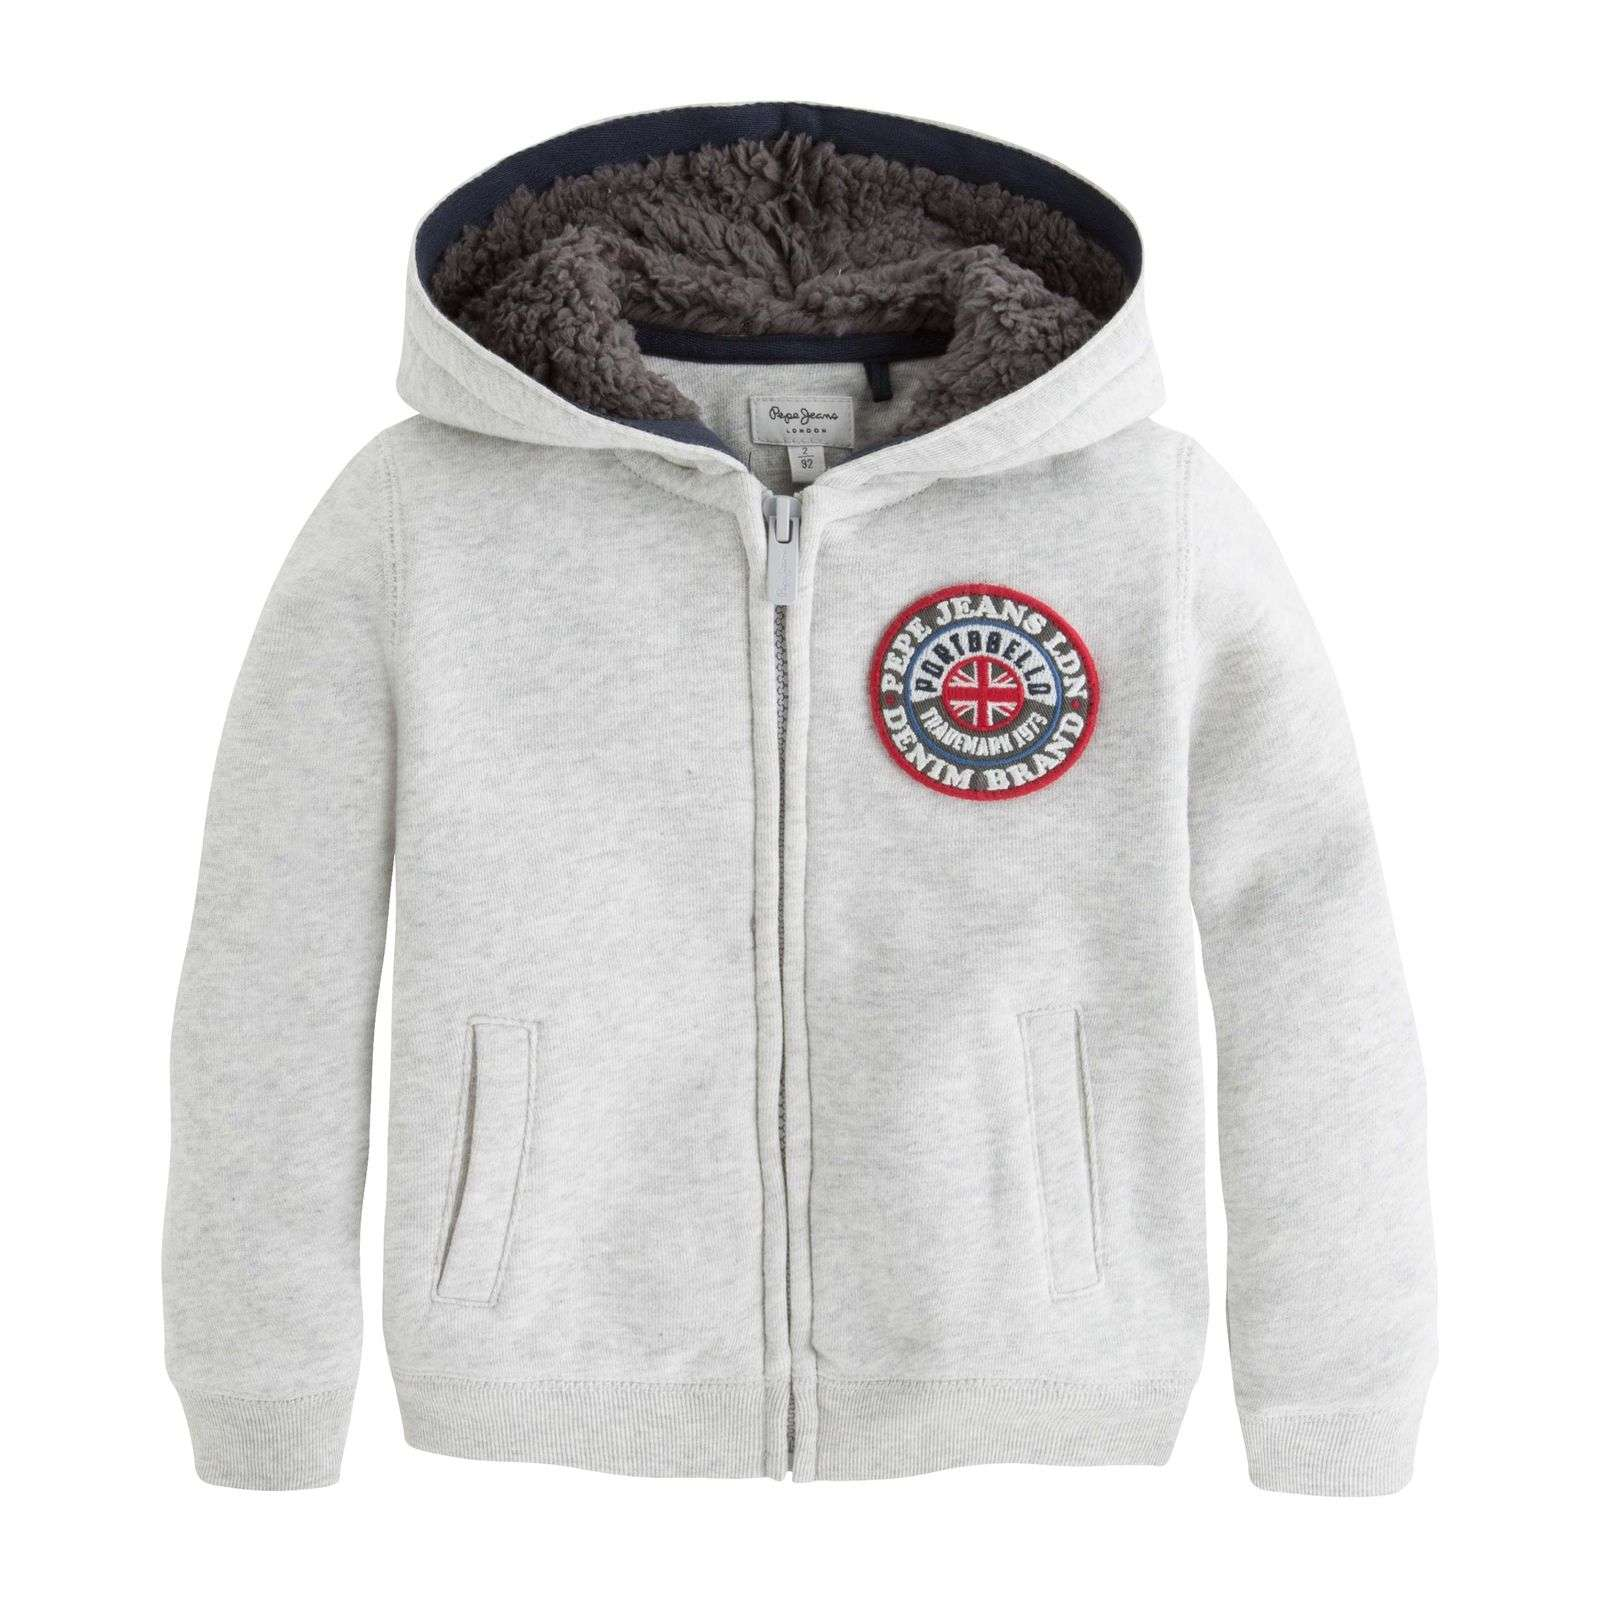 Pepe Jeans London MAXWELL - Sweat à capuche - gris chine